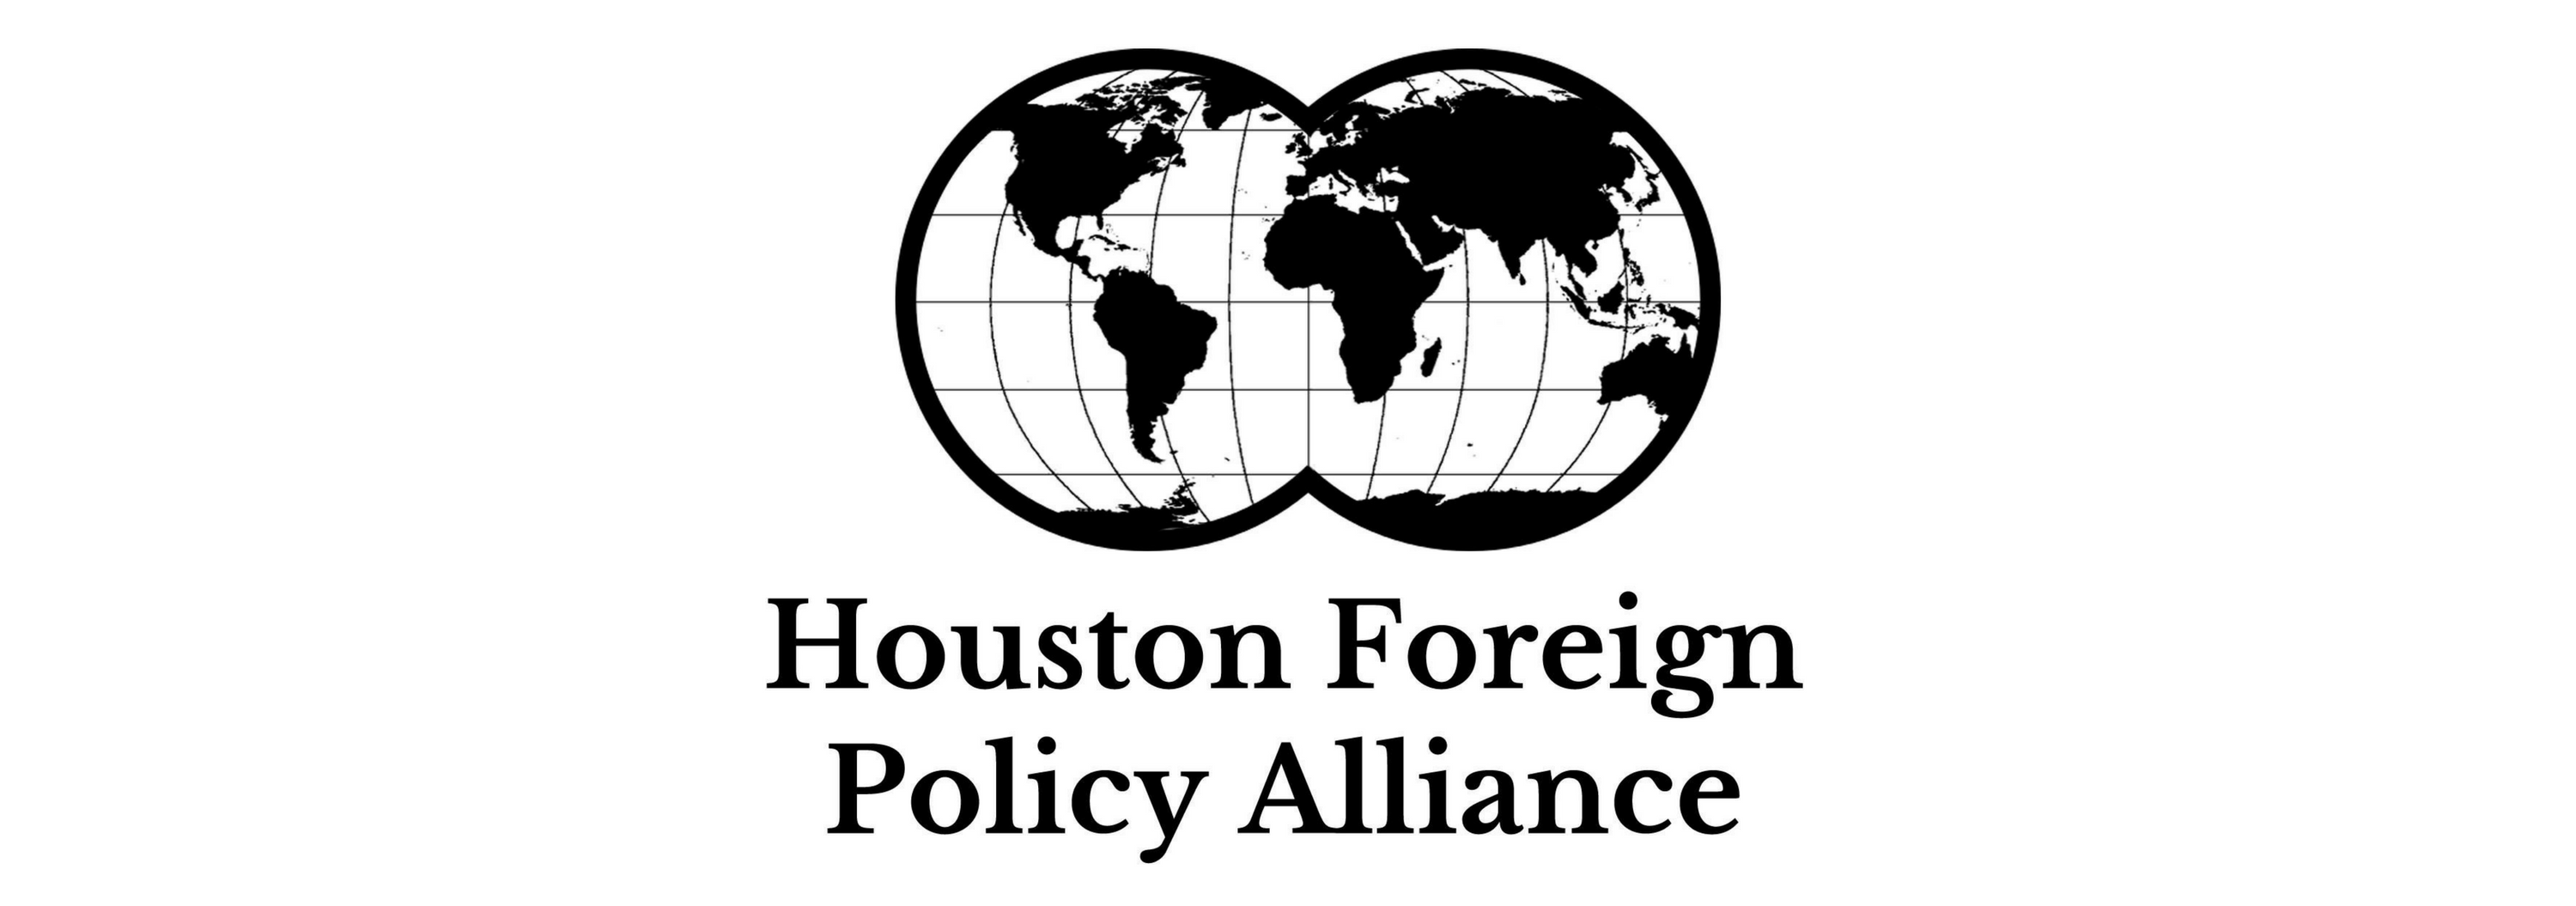 Houston Foreign Policy Alliance